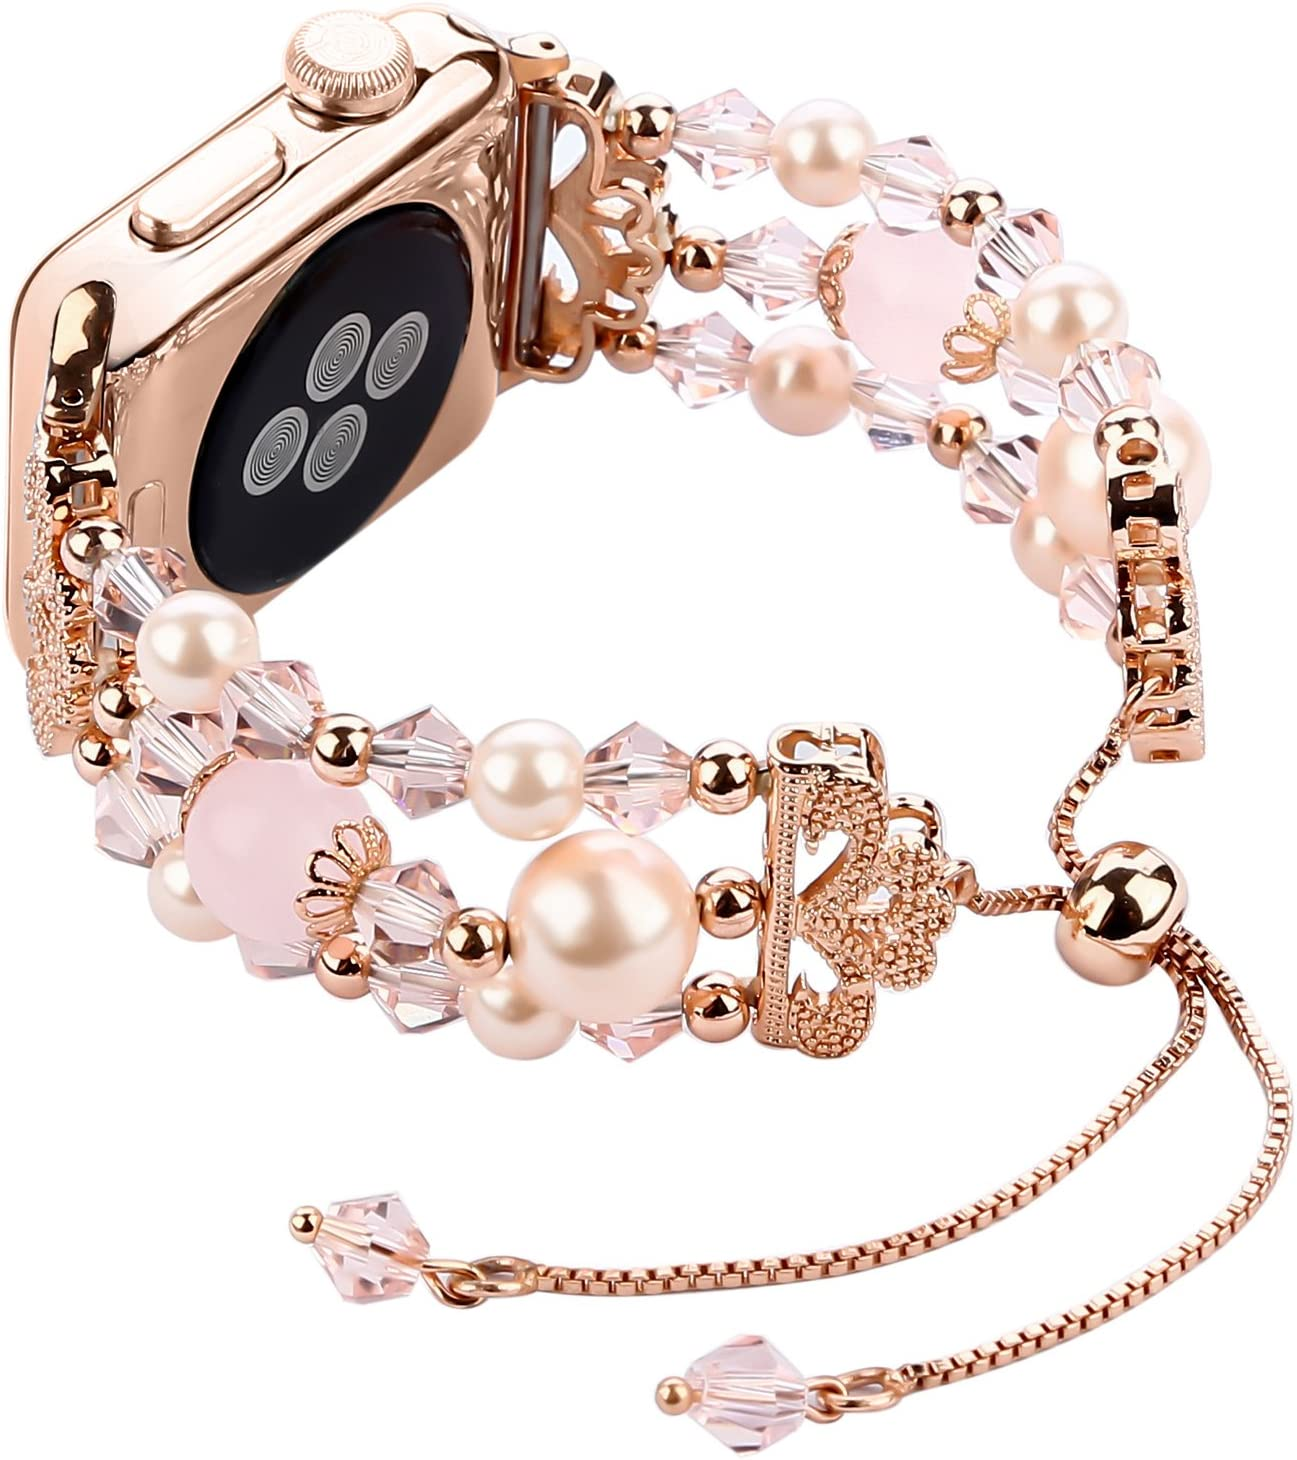 Tomazon Compatible for Apple Watch Bands 42mm 44mm, Adjustable Handmade Crystal Pearl Bracelet Women Female Wristbands Strap for iWatch Series 6/5/4/3/2/1 Sport, Edition, Nike+ (Rose Gold)